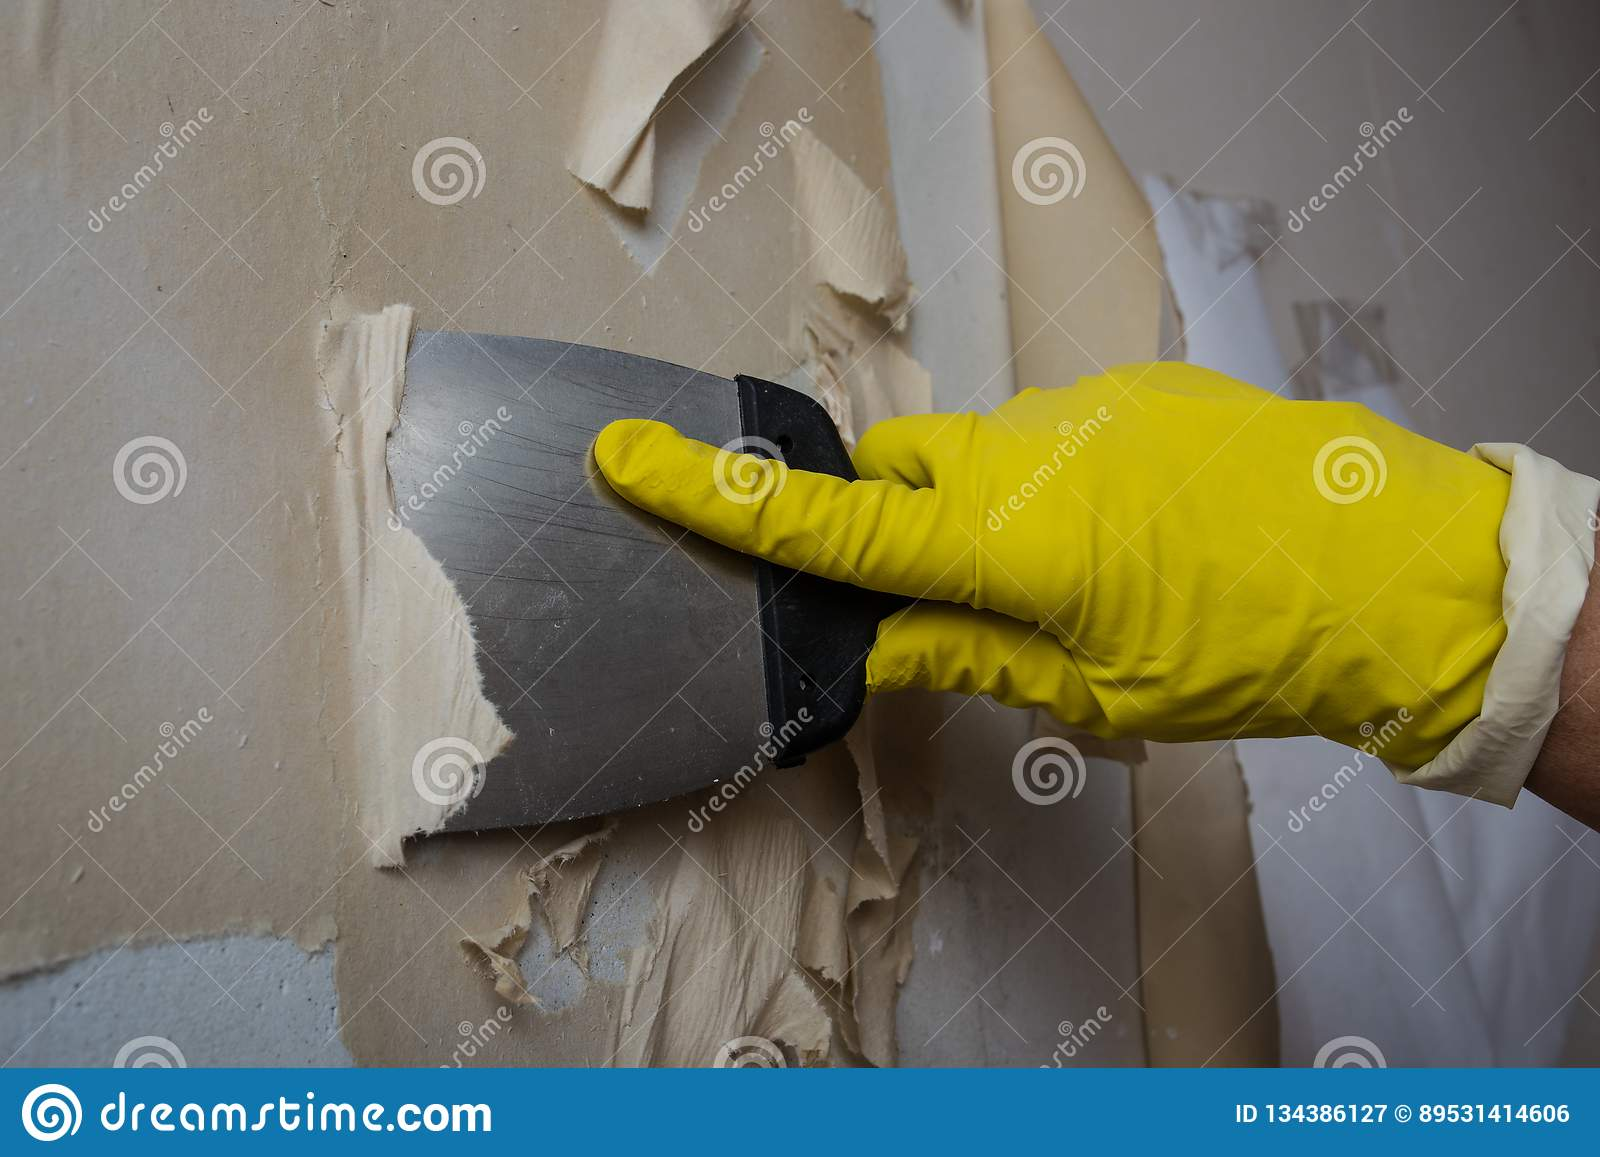 Cleaning The Wall From Old Wallpaper Stock Image Image Of